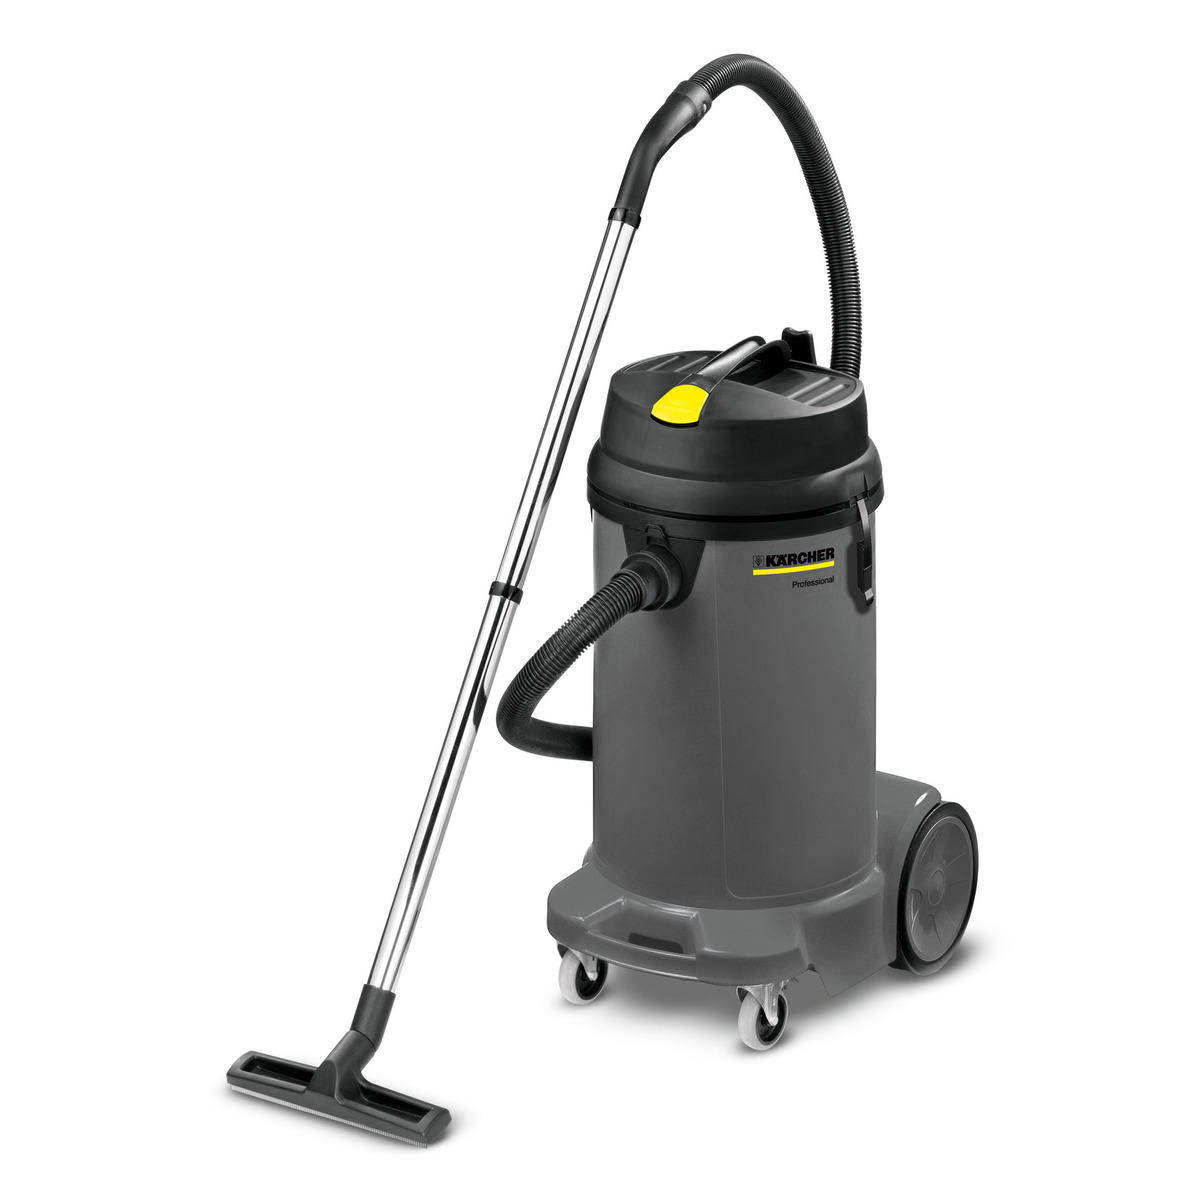 Karcher wet and dry vacuum cleaner NT 48/1 *GB